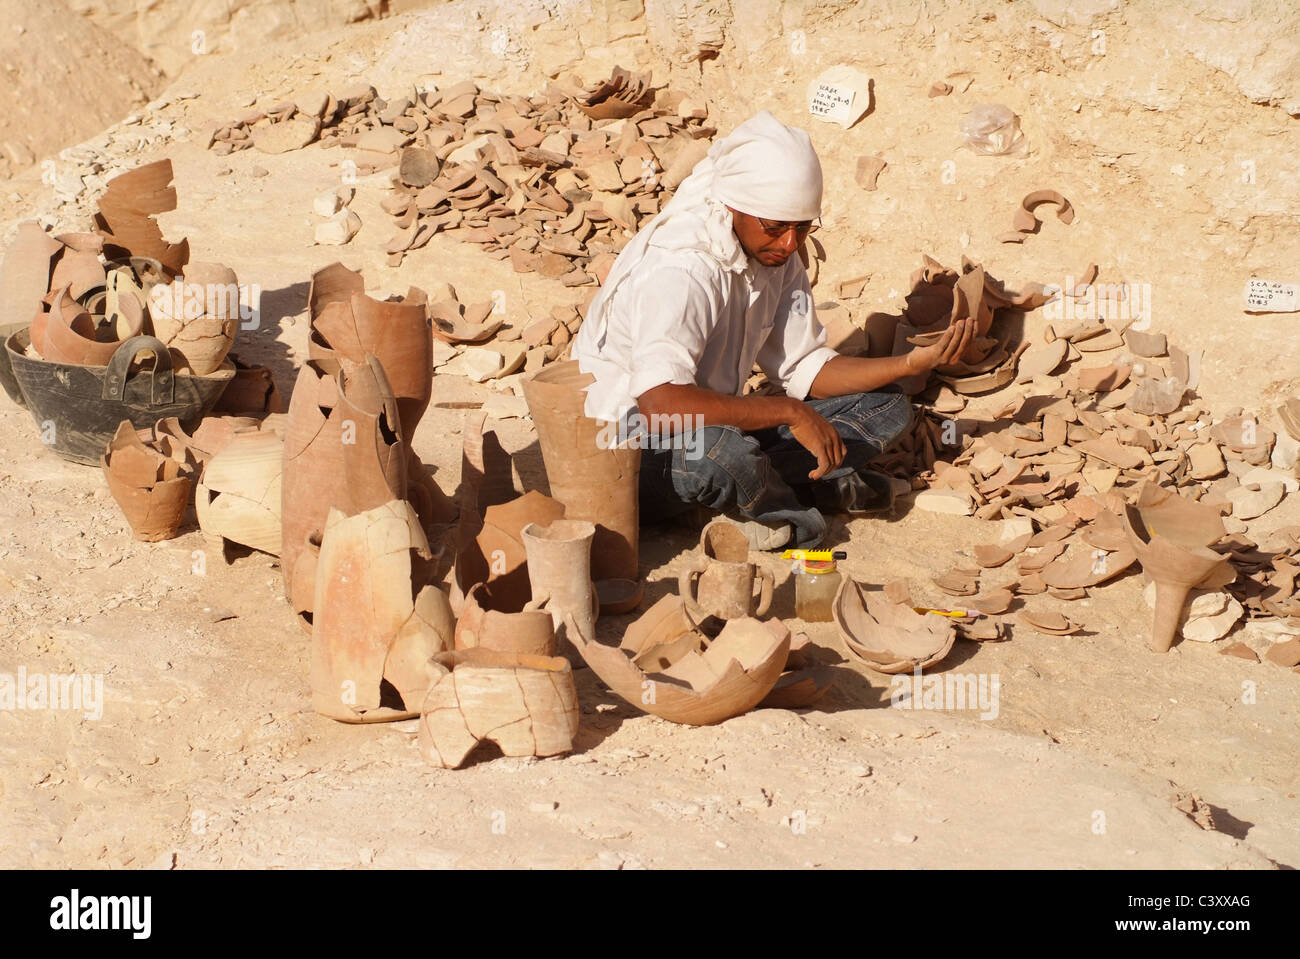 africa-middle-east-egypt-egyptian-luxor-nile-valley-of-the-kings-archaeologists-C3XXAG.jpg